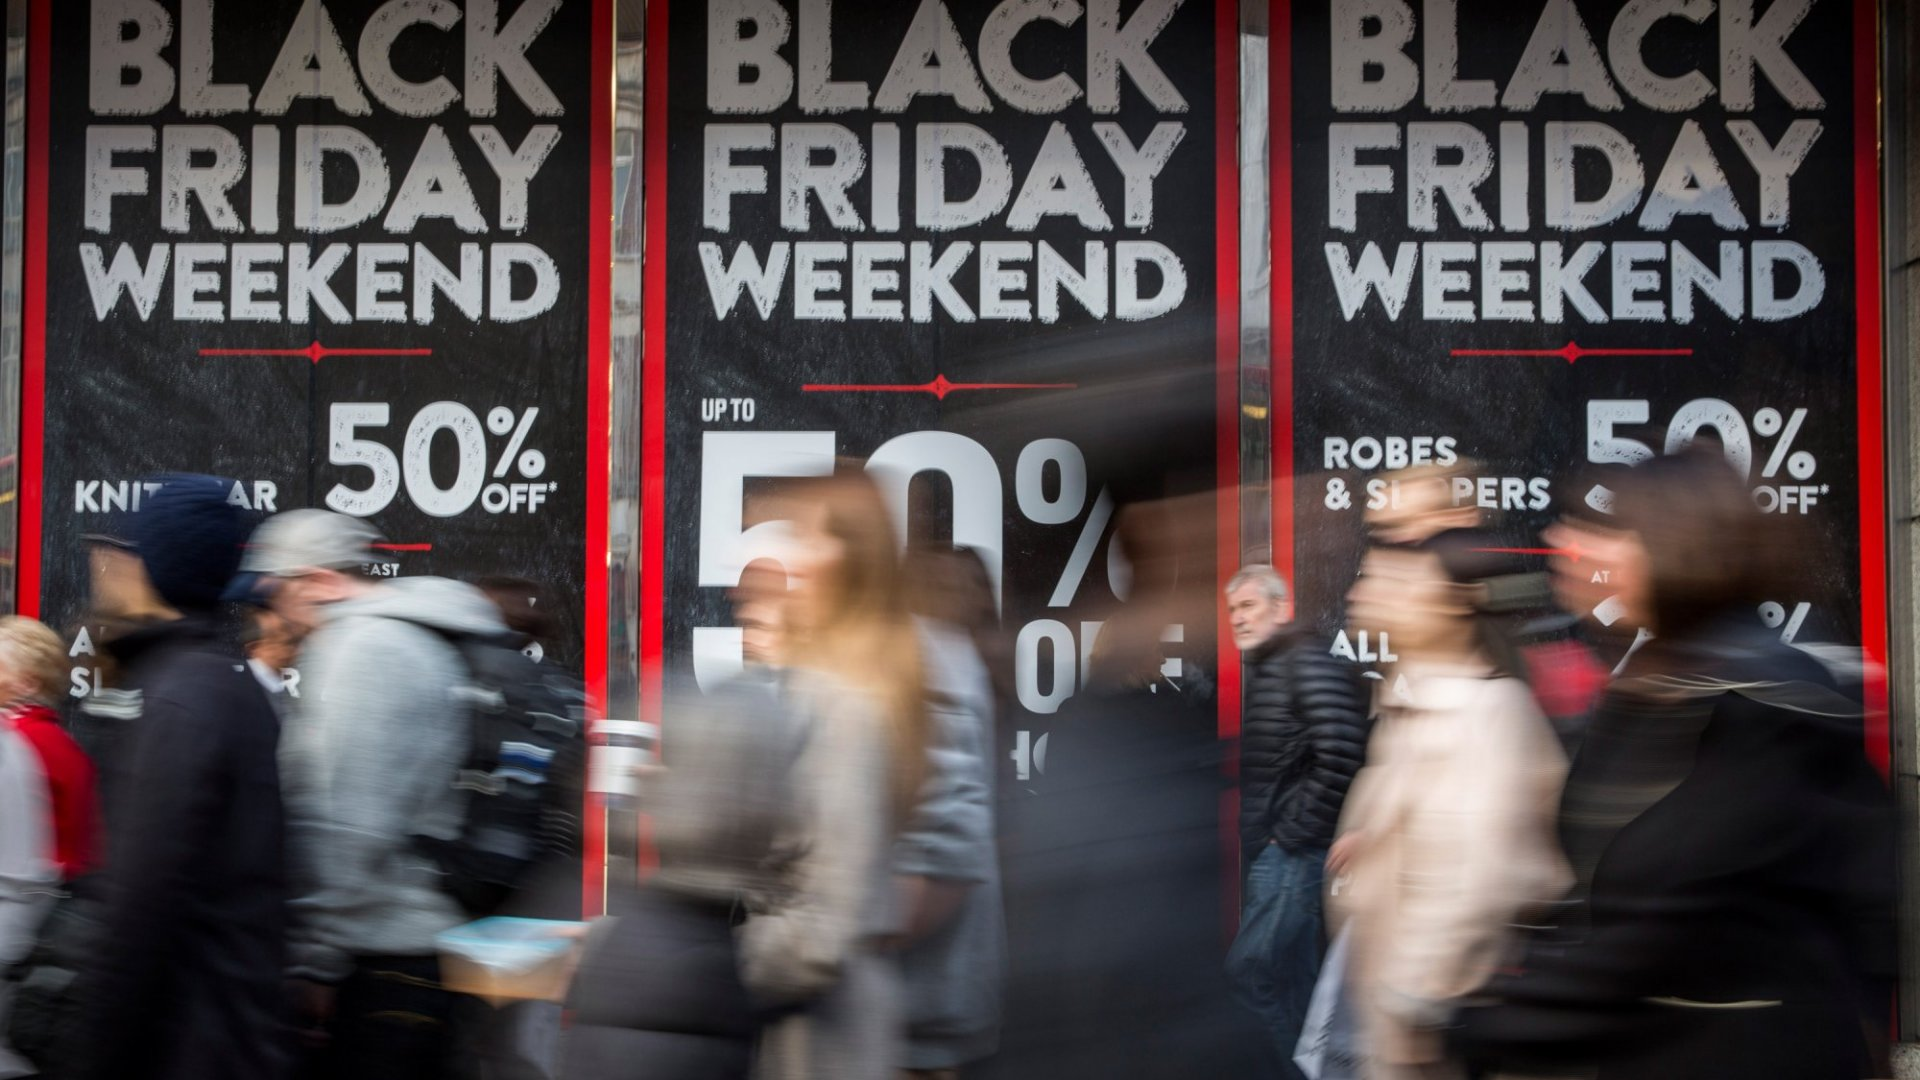 Psychologists Confirm There Are 2 Kinds of People in the World: Those Who Like Black Friday and Those Who Hate It